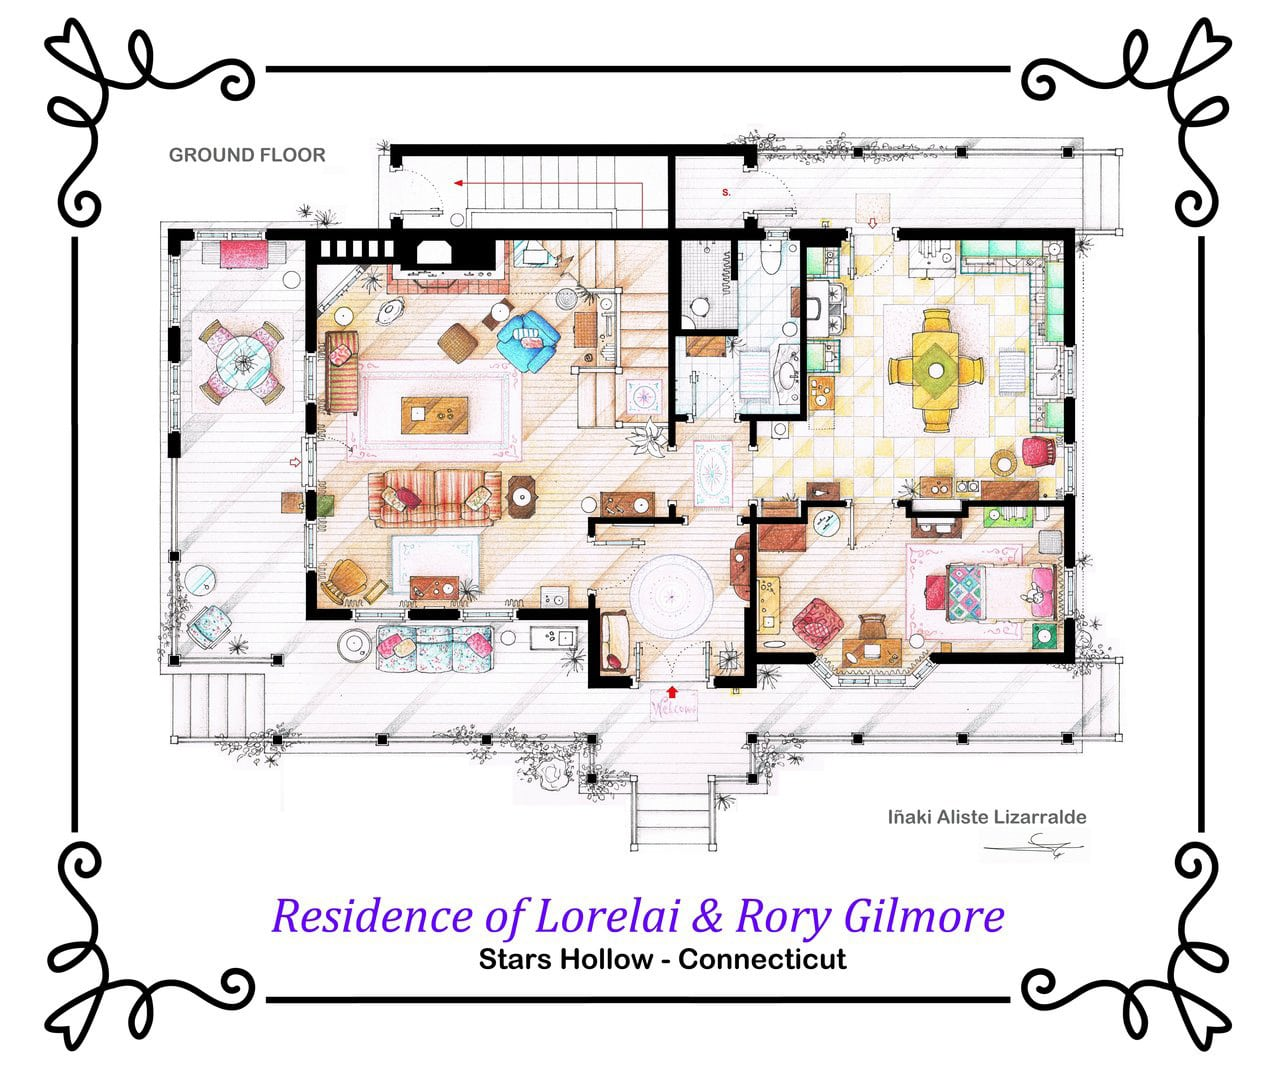 Artsy architectural apartment floor plans from tv shows 9 for Famous building blueprints